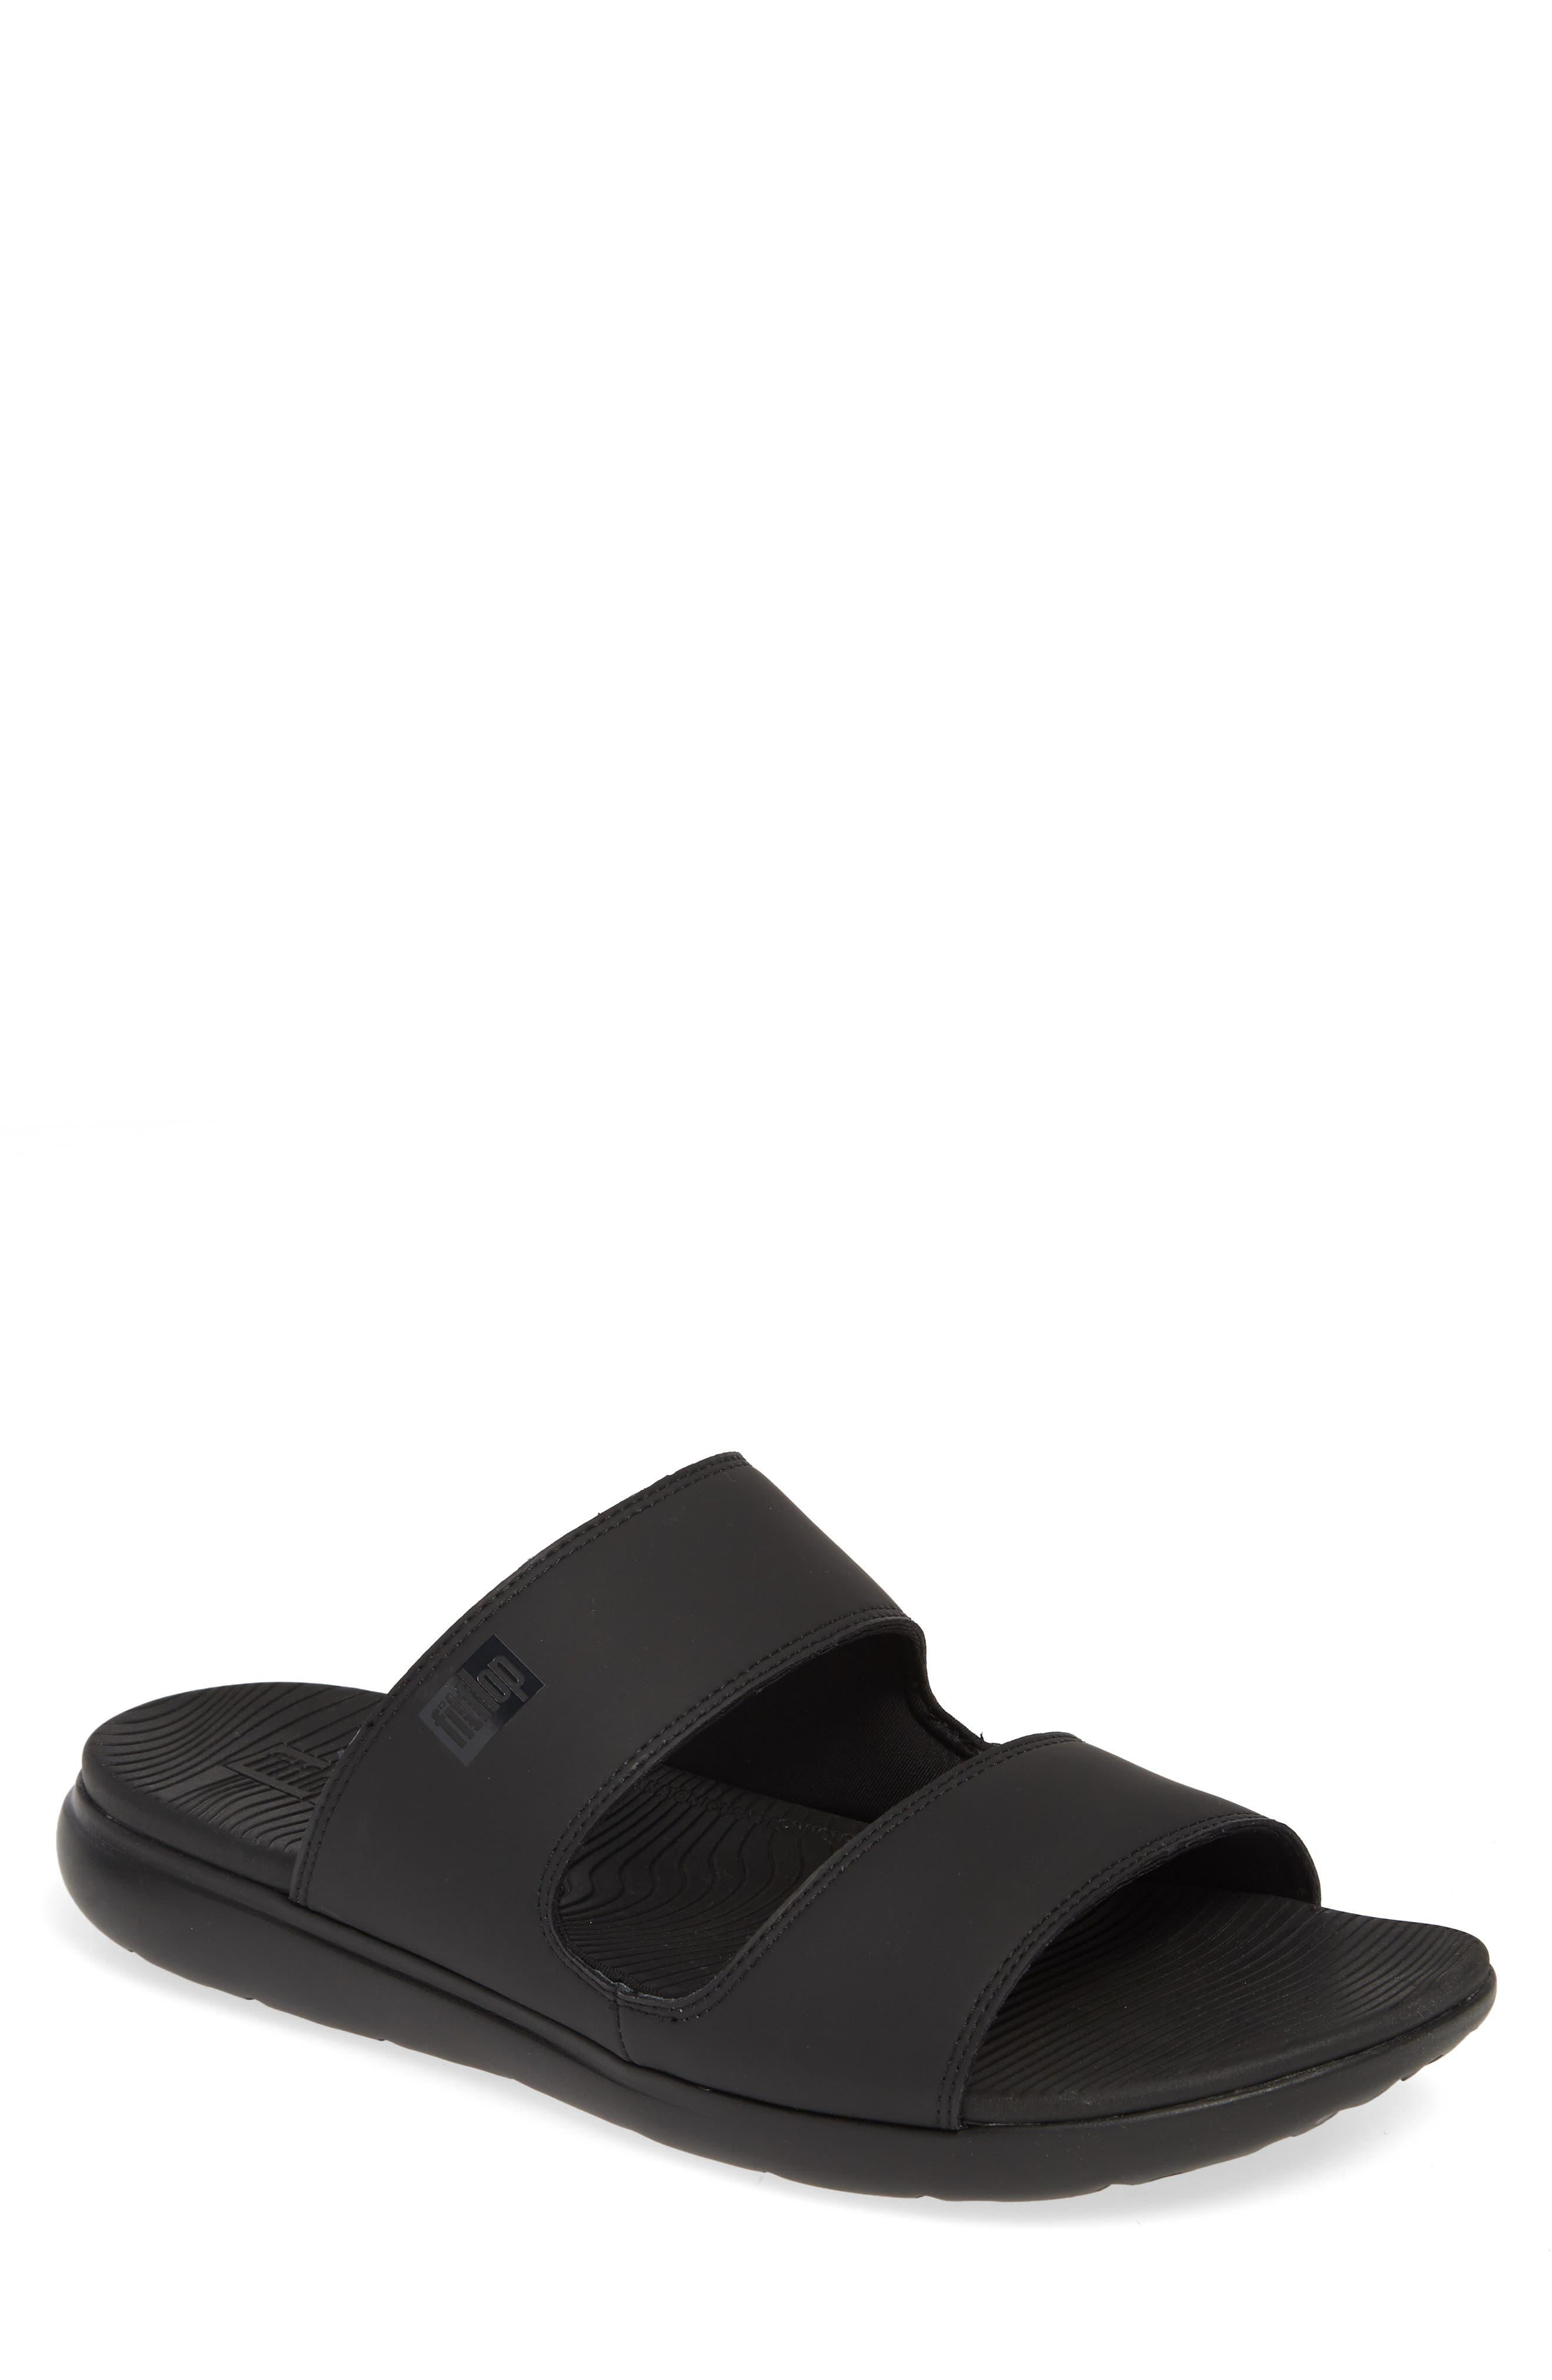 11a693ae7 Sandals FitFlop for Men